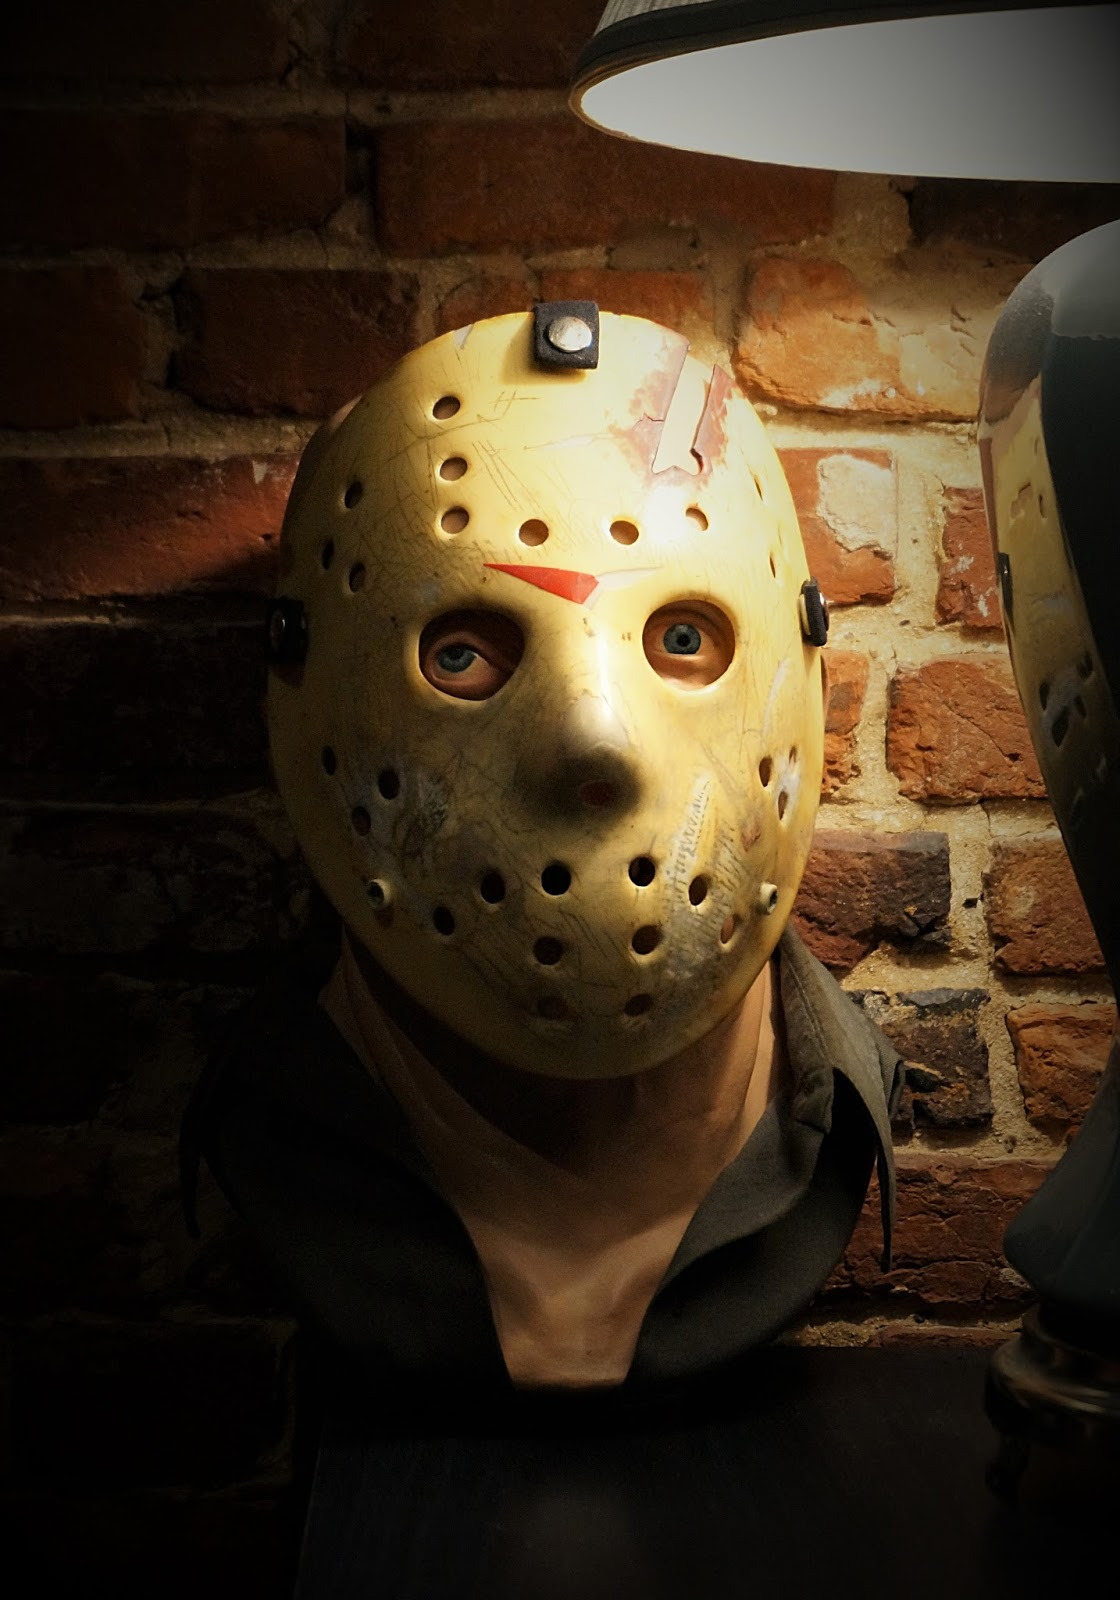 Jasonlivessince1980 S Friday The 13th Blog How The Part 3 Masks